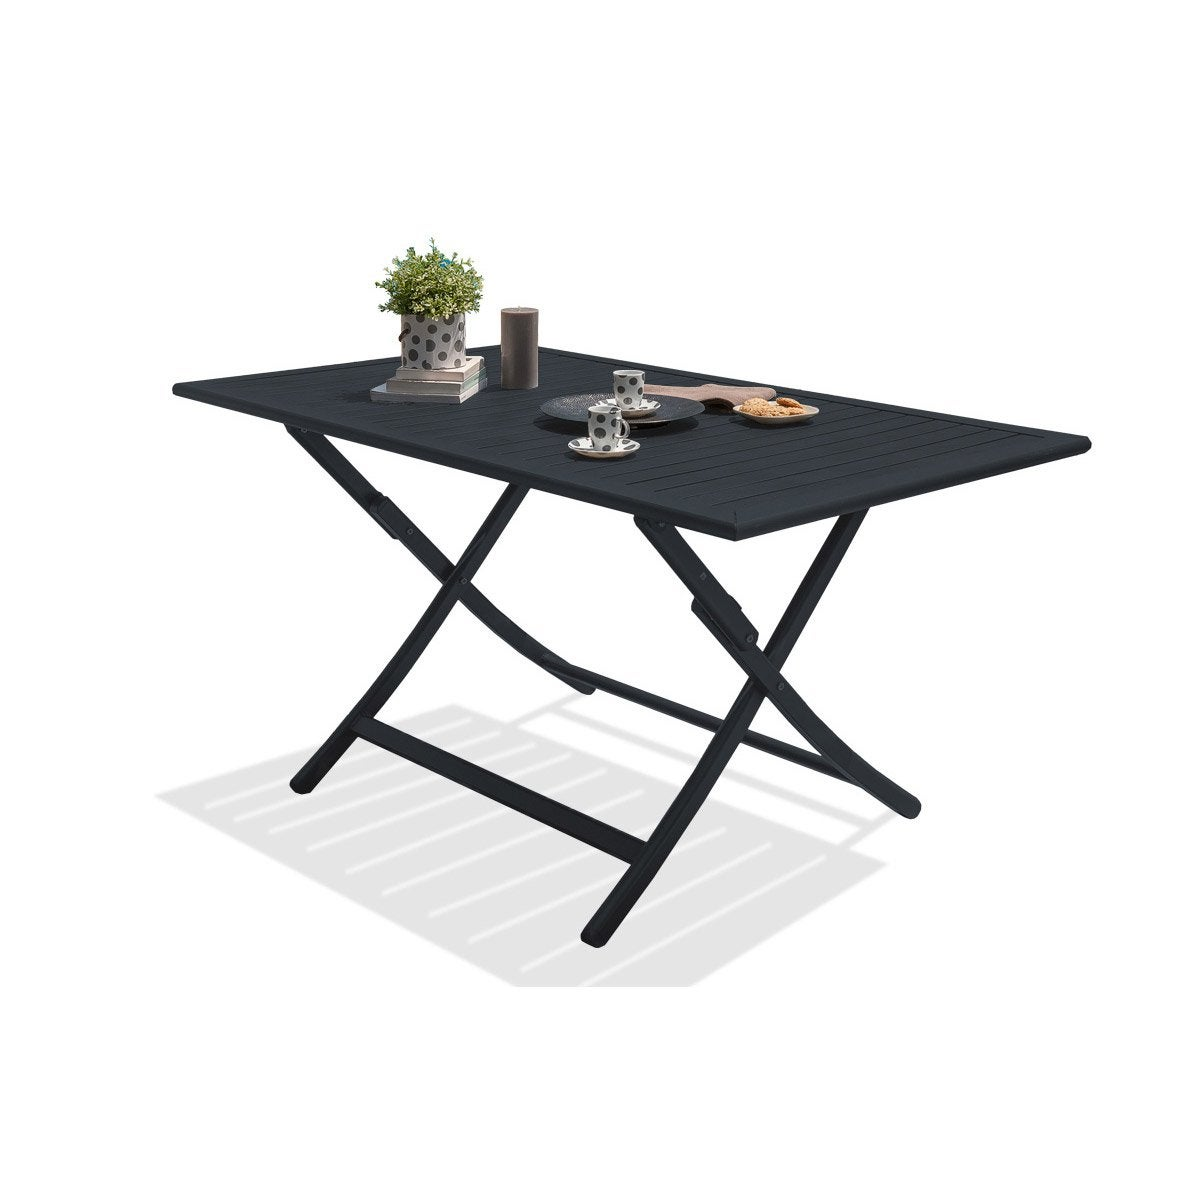 Table de jardin marius rectangulaire gris anthracite 4 6 for Table extensible leroy merlin